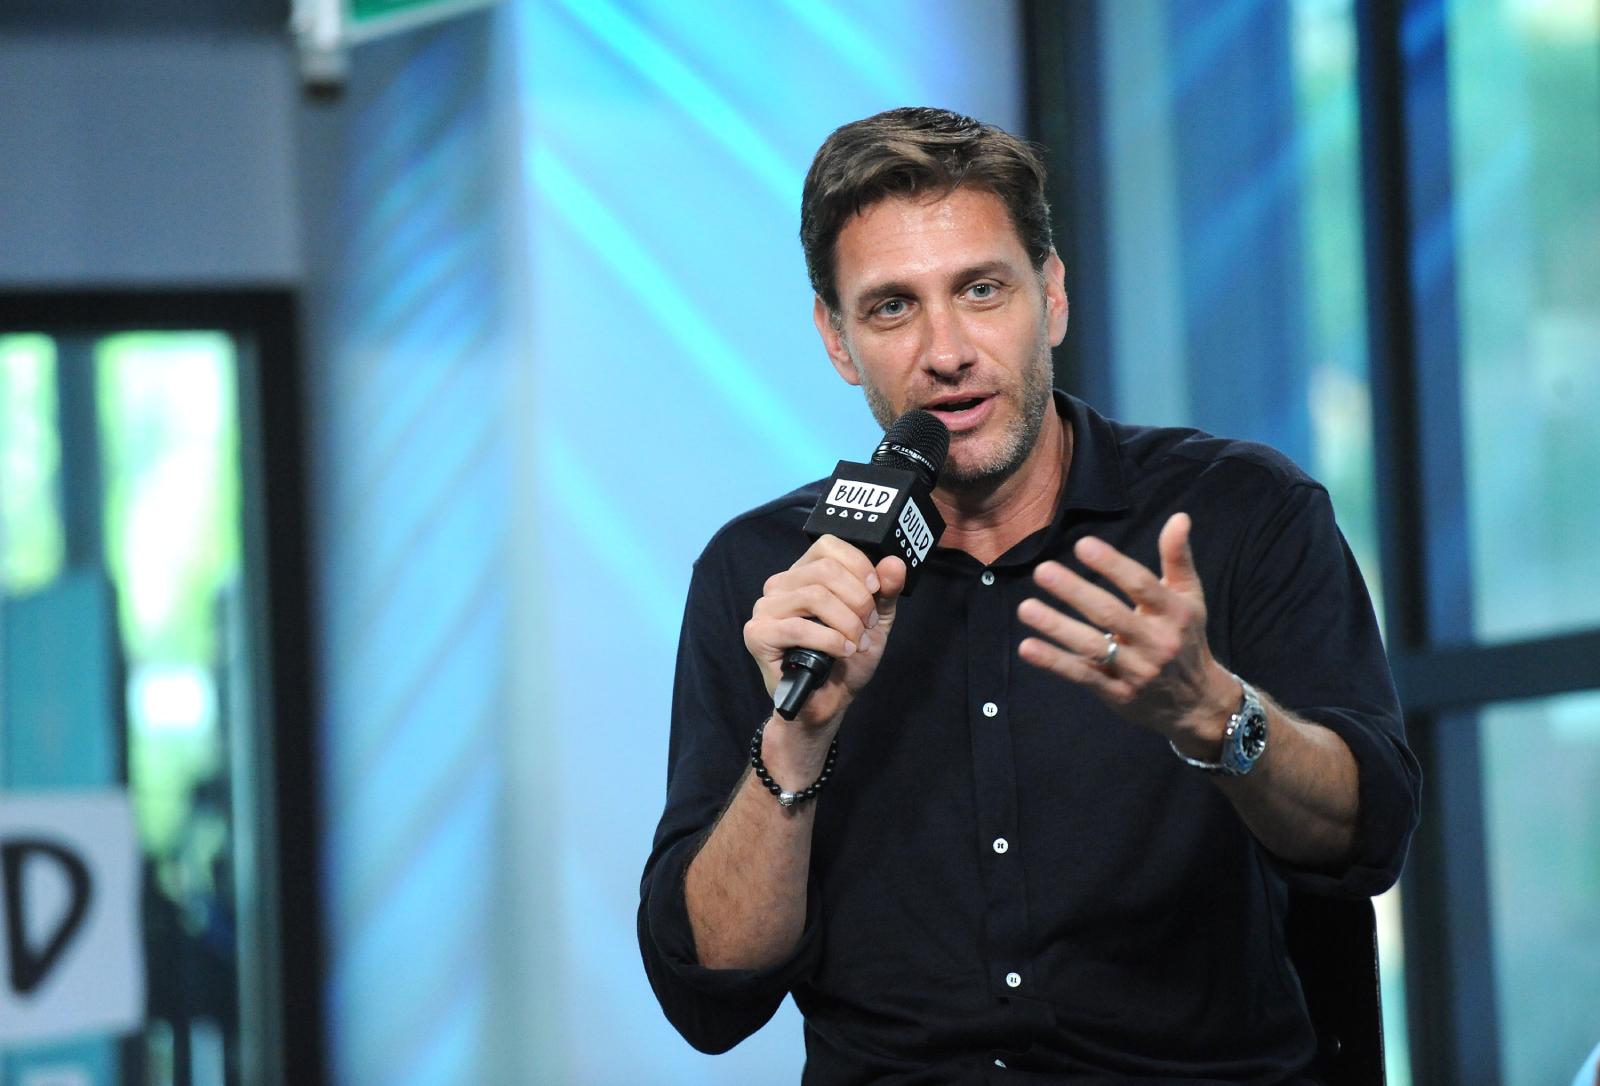 Mike Greenberg is a massive New York Jets fan. He has since reacted to their recent devastating move, though, that could hurt them for years.